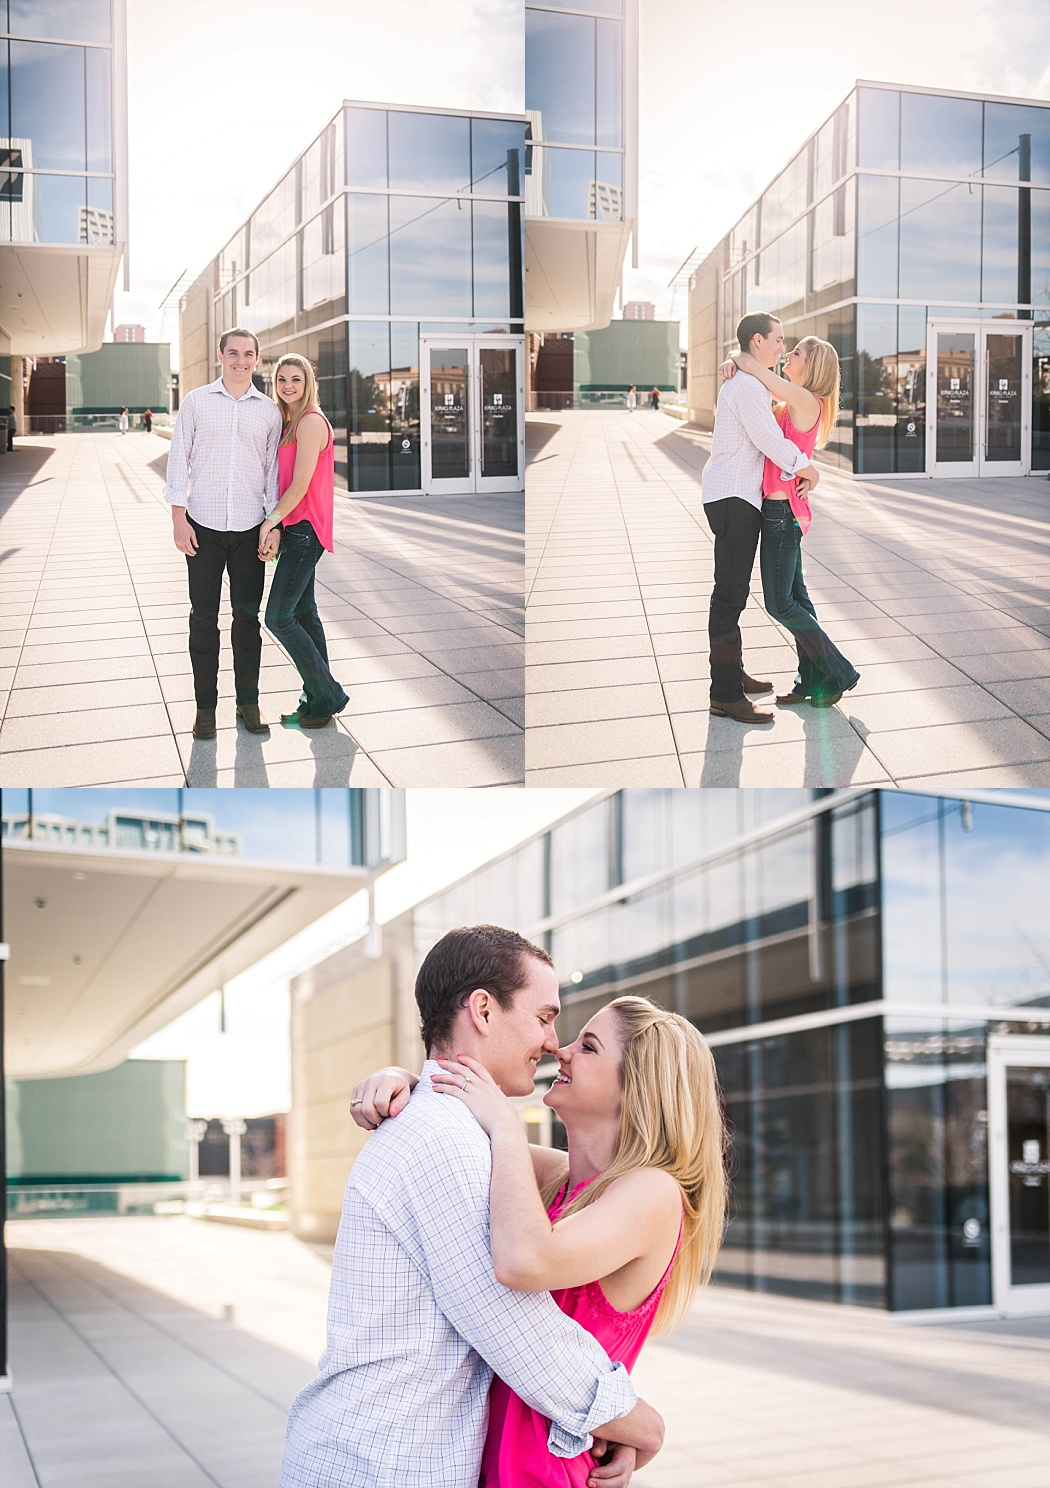 Engagement session in downtown Dallas photographed by north Dallas, Tx area photographer Amber Knauss of Golightly Images.